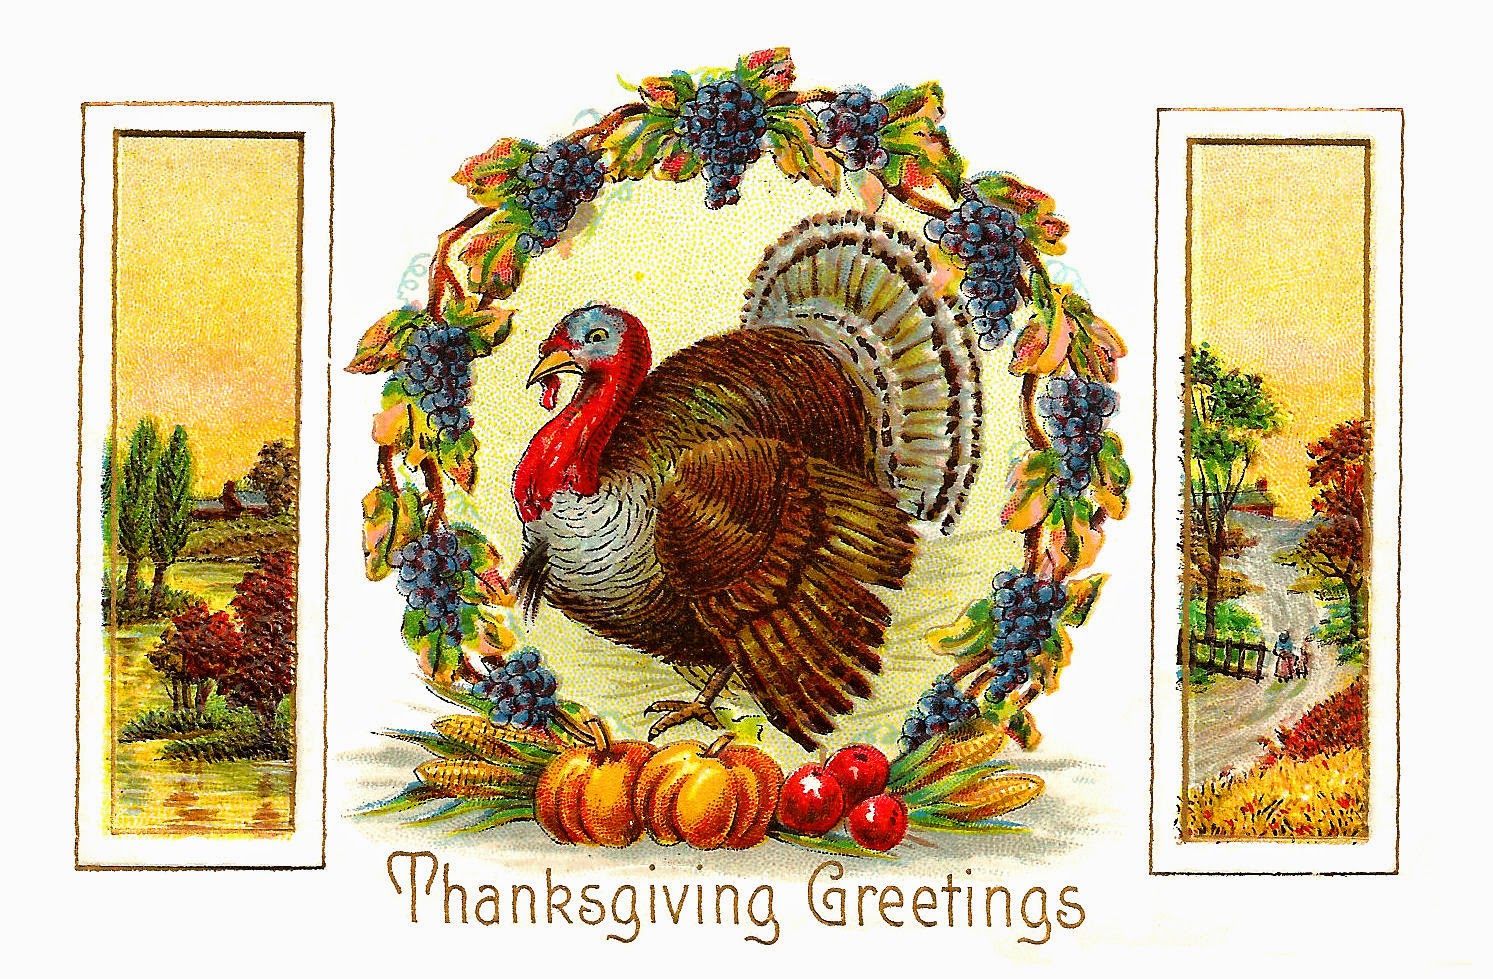 Antique Thanksgiving card